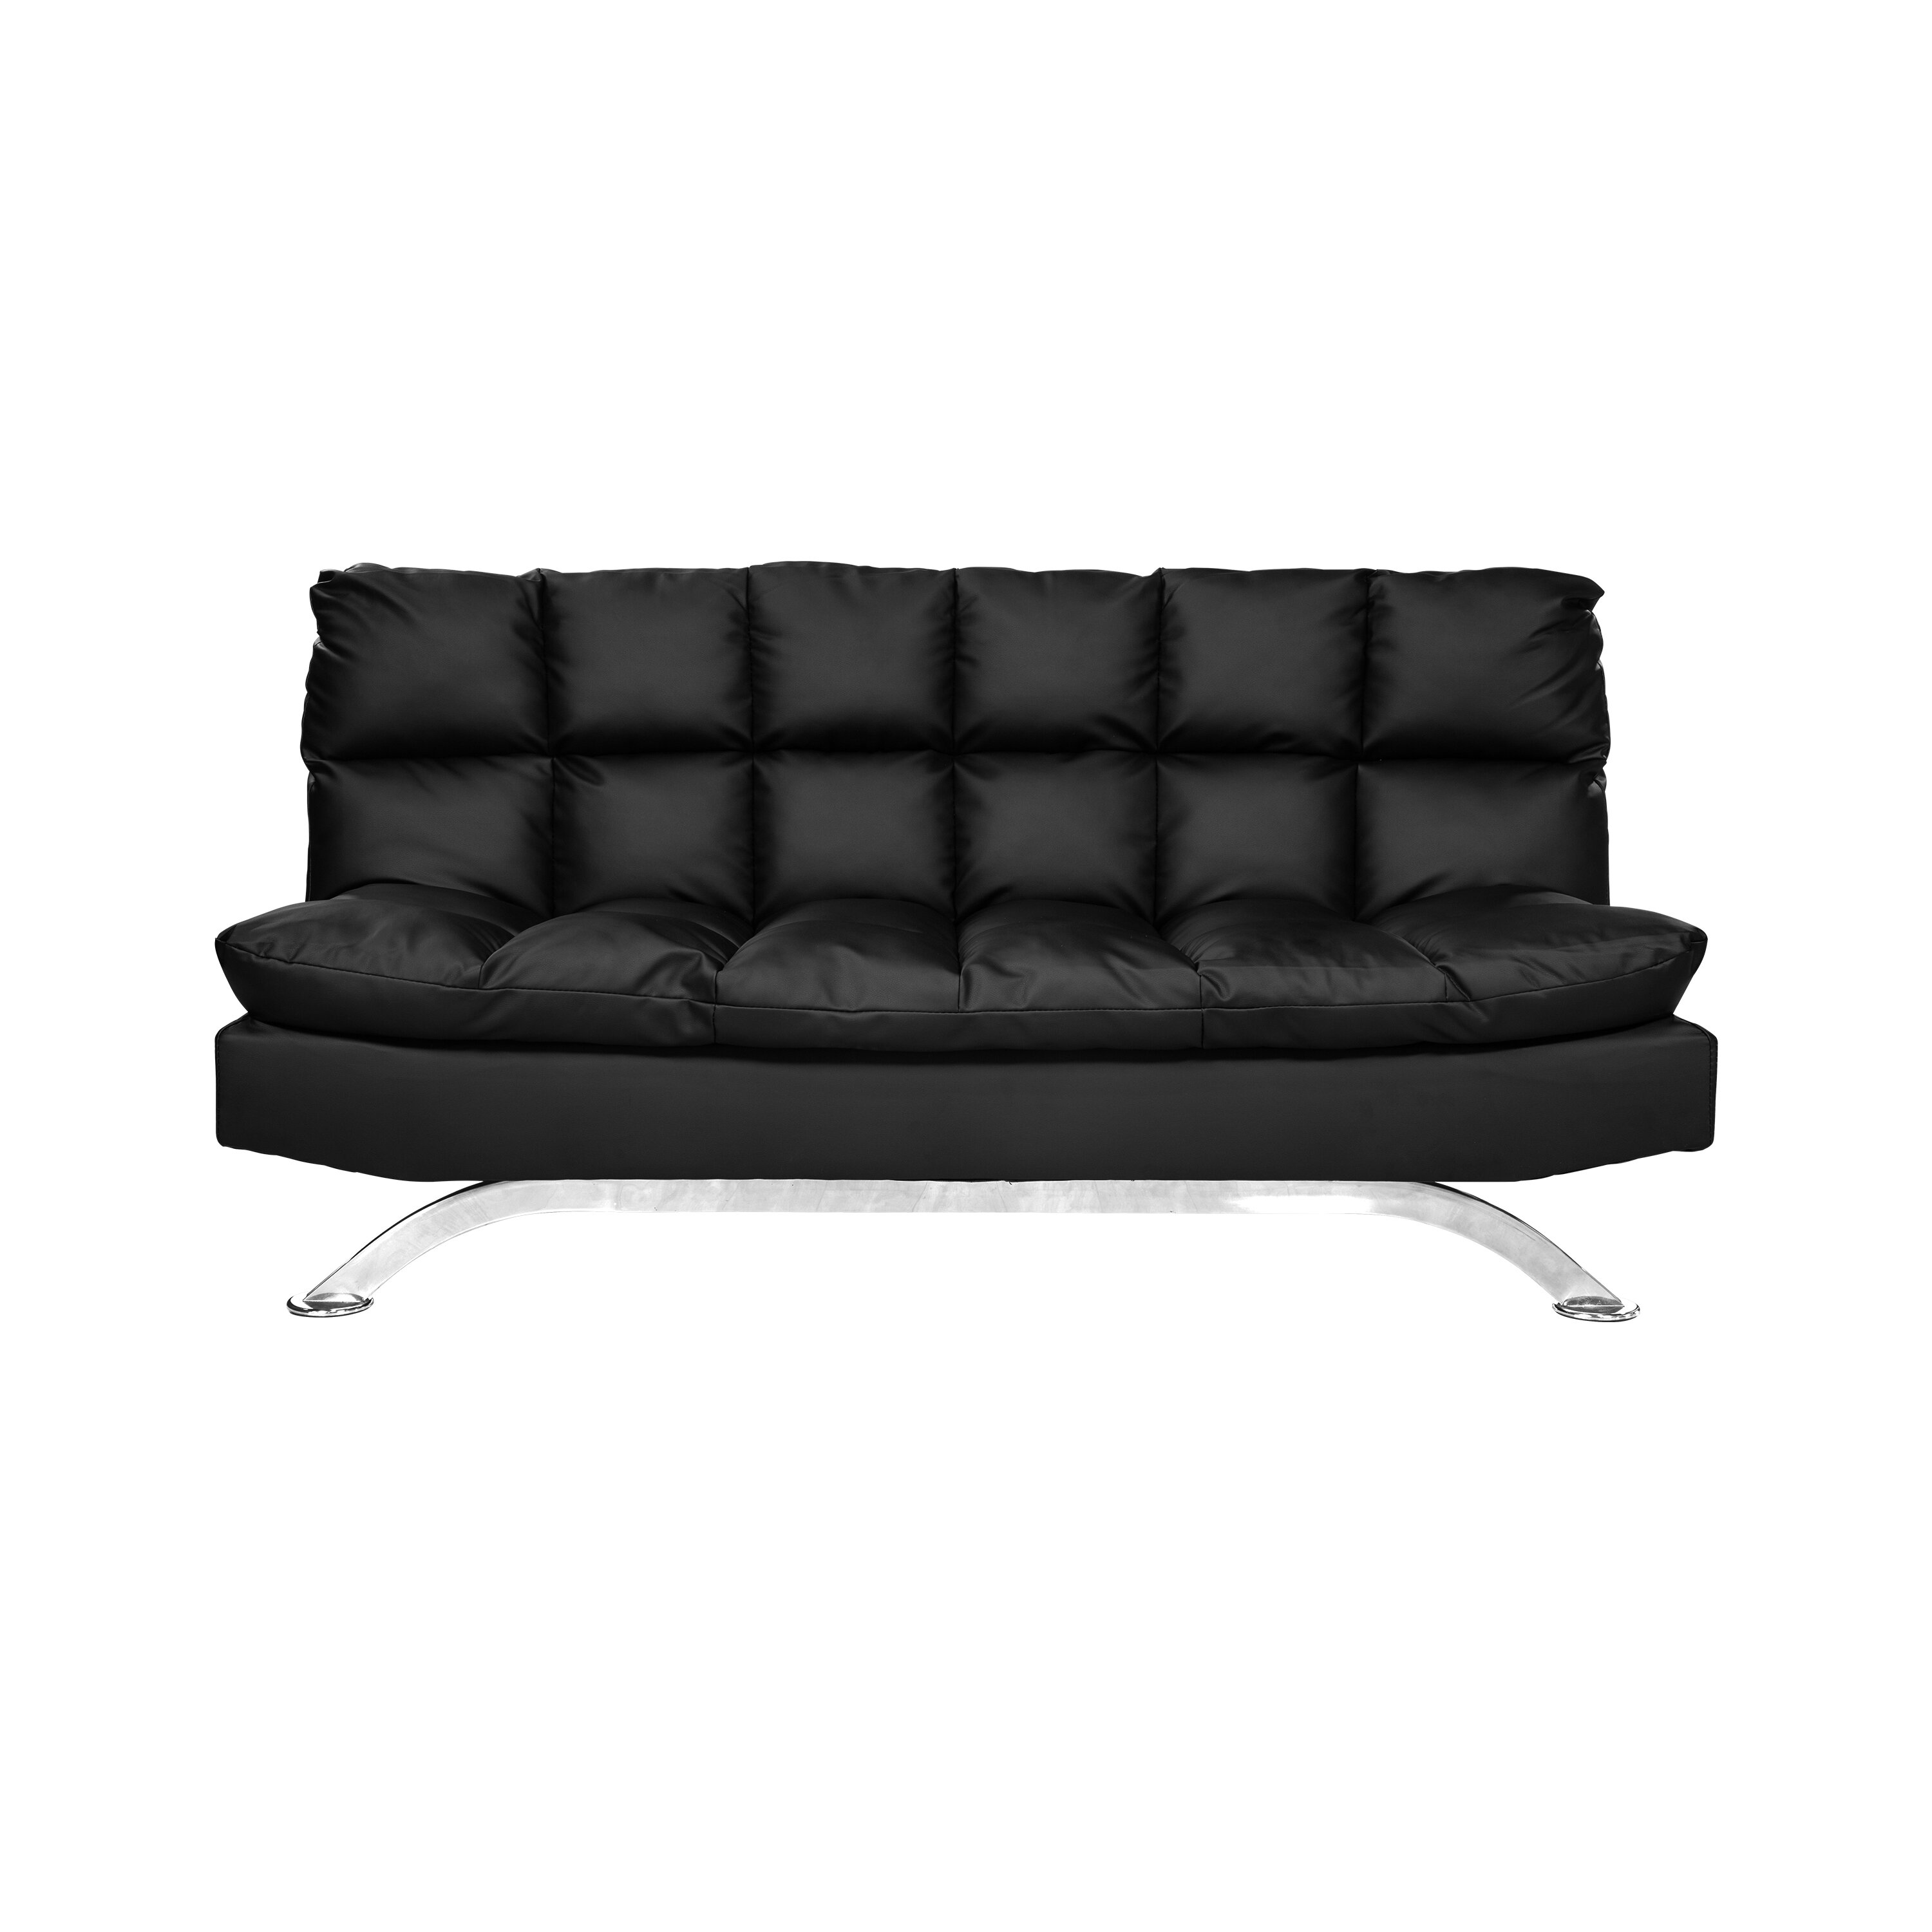 Swell Rhames Biscuit Back Convertible Sofa Theyellowbook Wood Chair Design Ideas Theyellowbookinfo